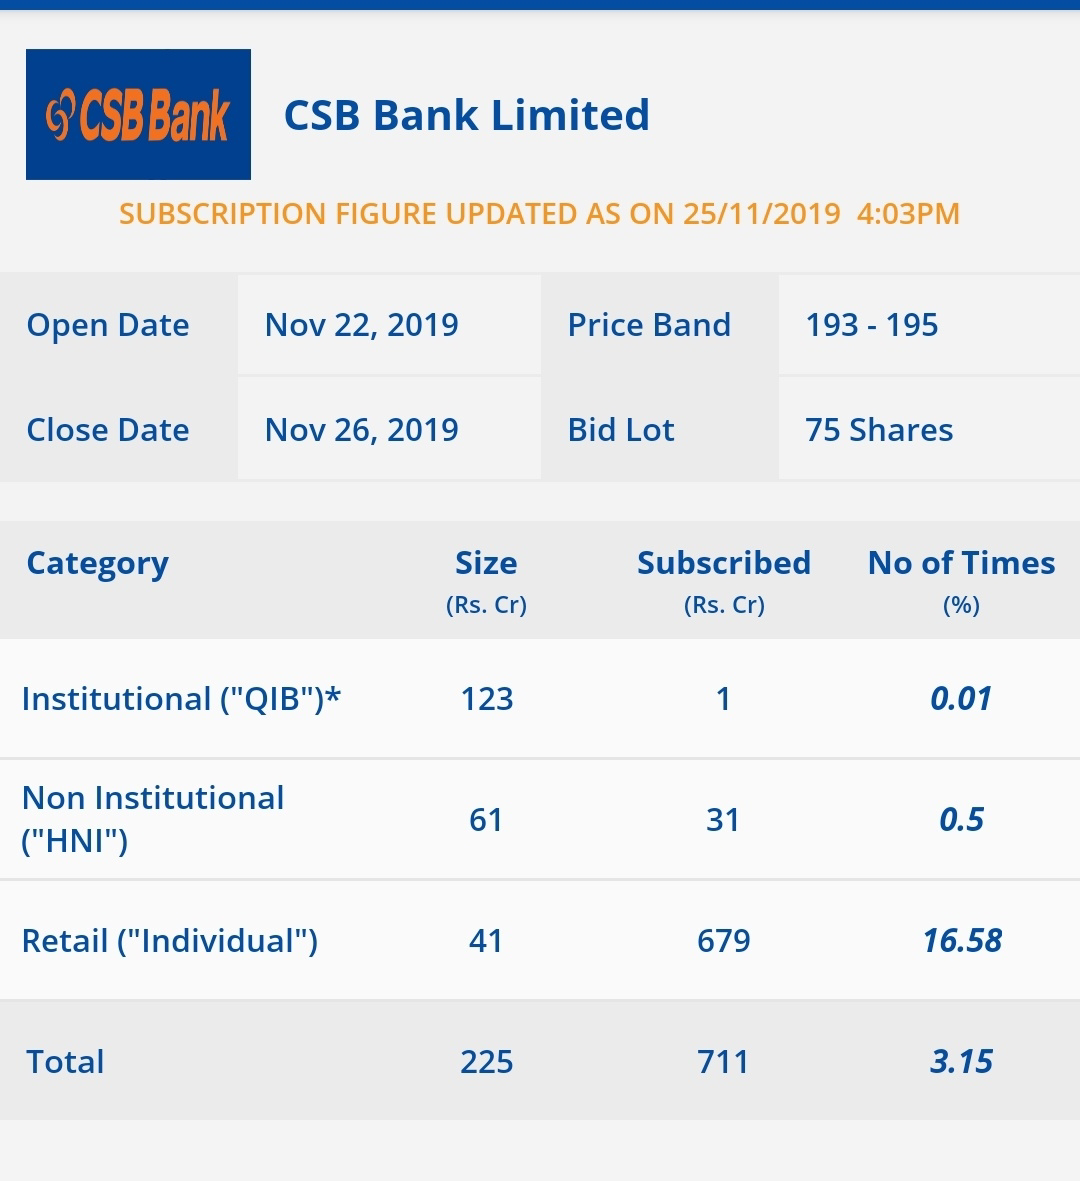 CSB Bank Subscription status as on Nov 25 - 4.00 pm